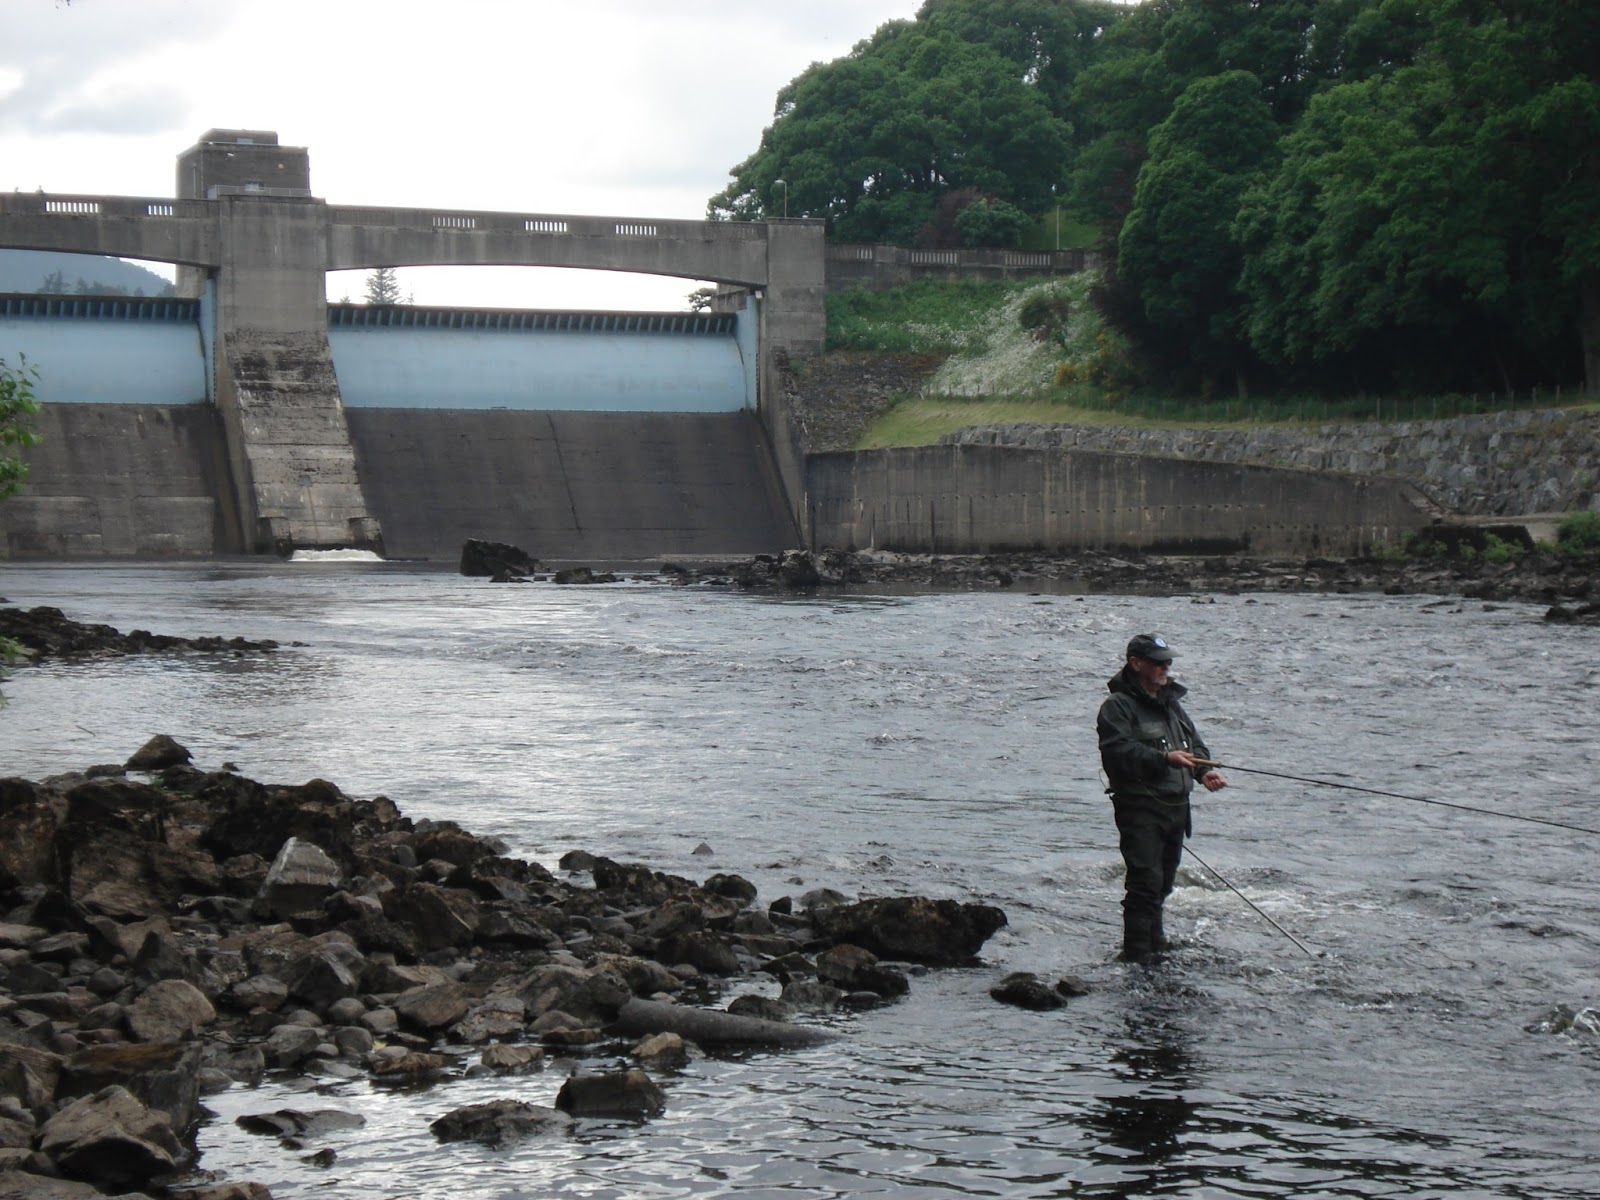 Salmon fishing update for thursday 20 june and friday 21 for Salmon fishing near me